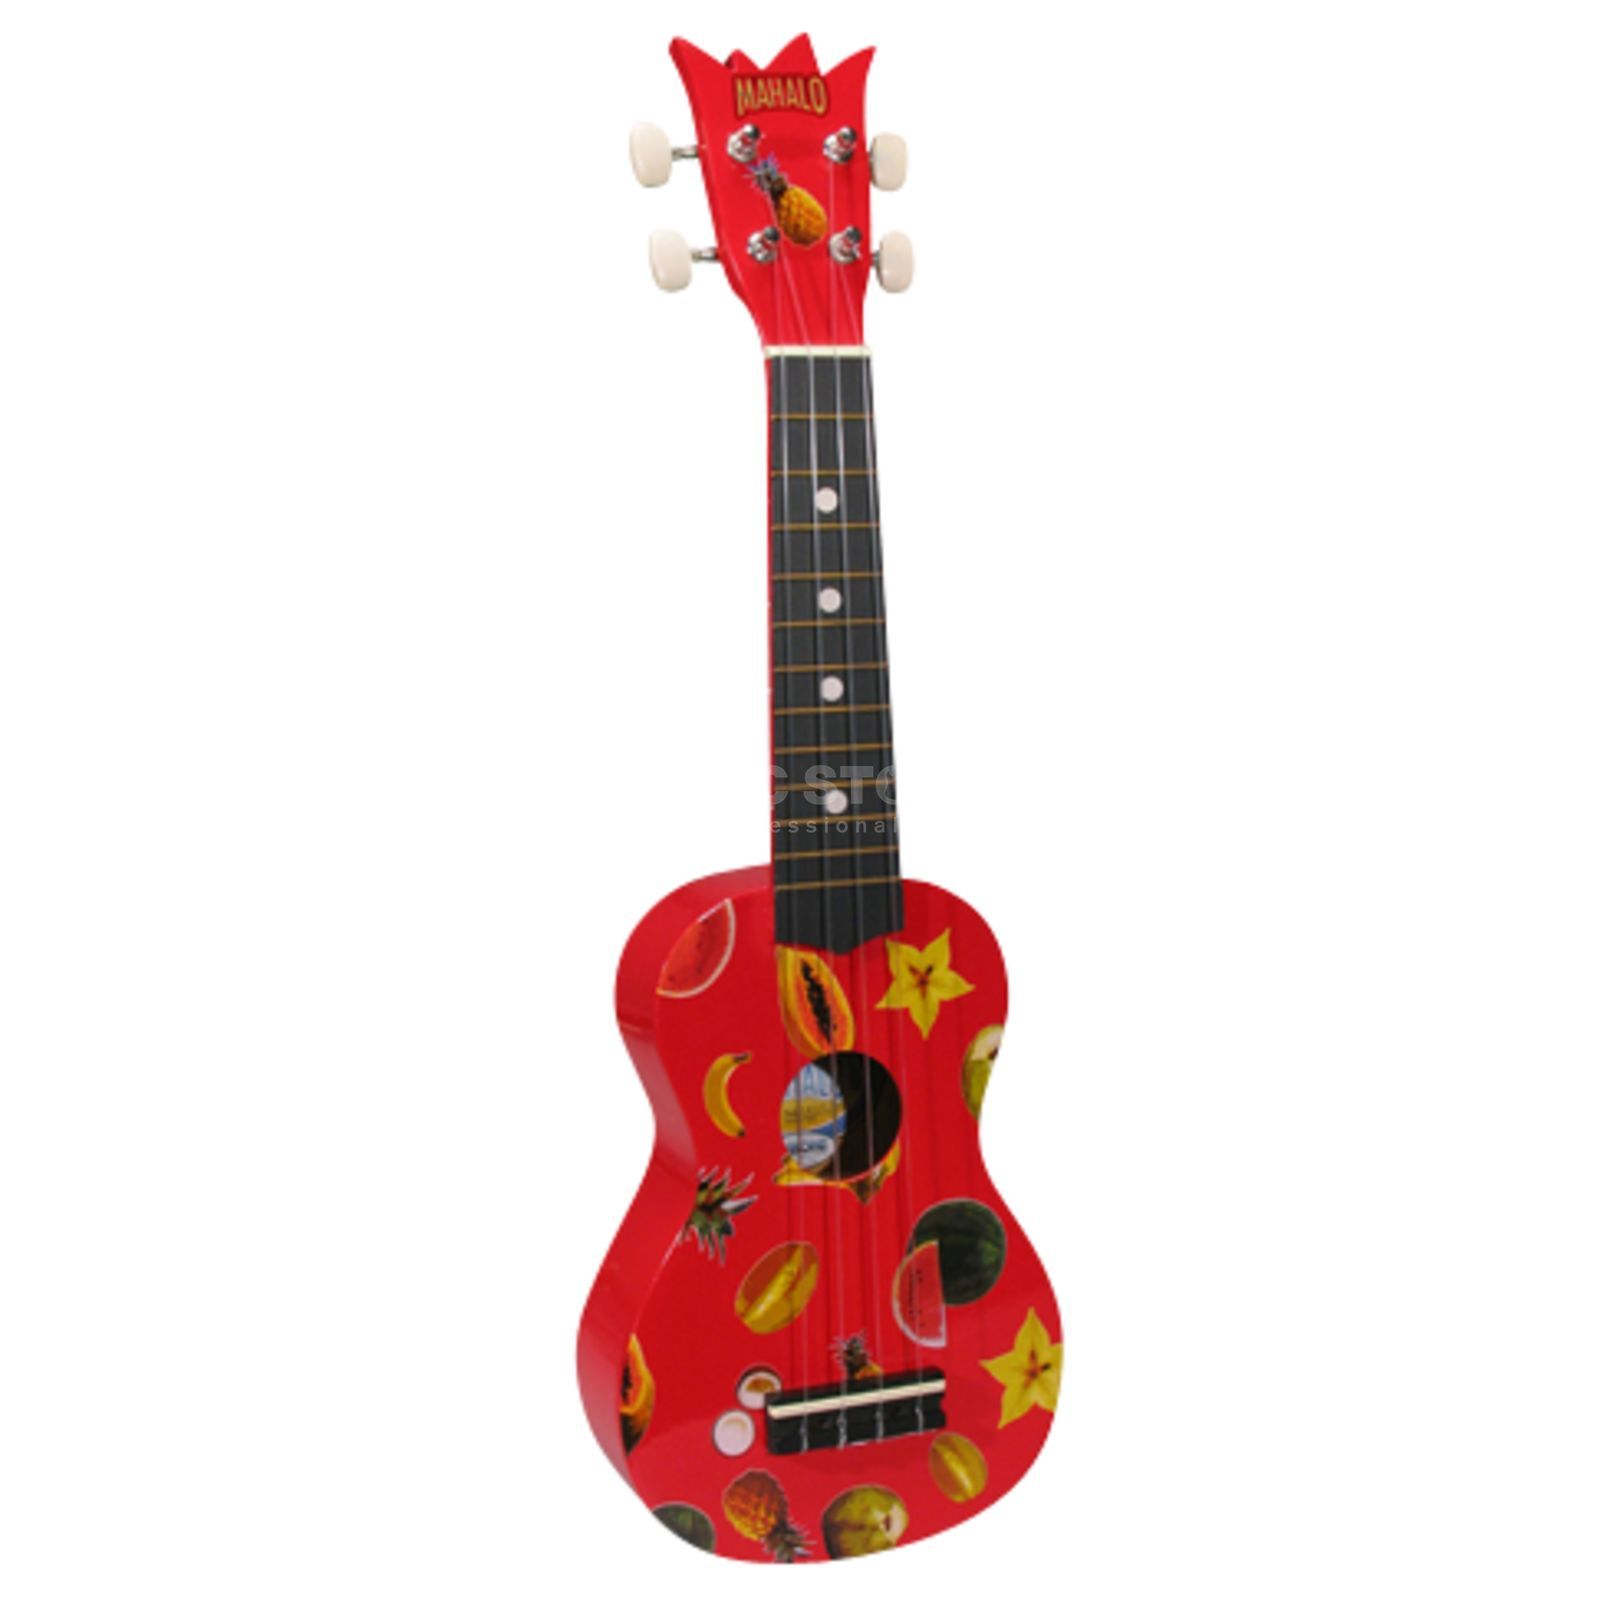 Mahalo U1-KIT-RD Red Sopranukulele inkl.Bag,DVD,Picks,Stimmpfeife Produktbillede